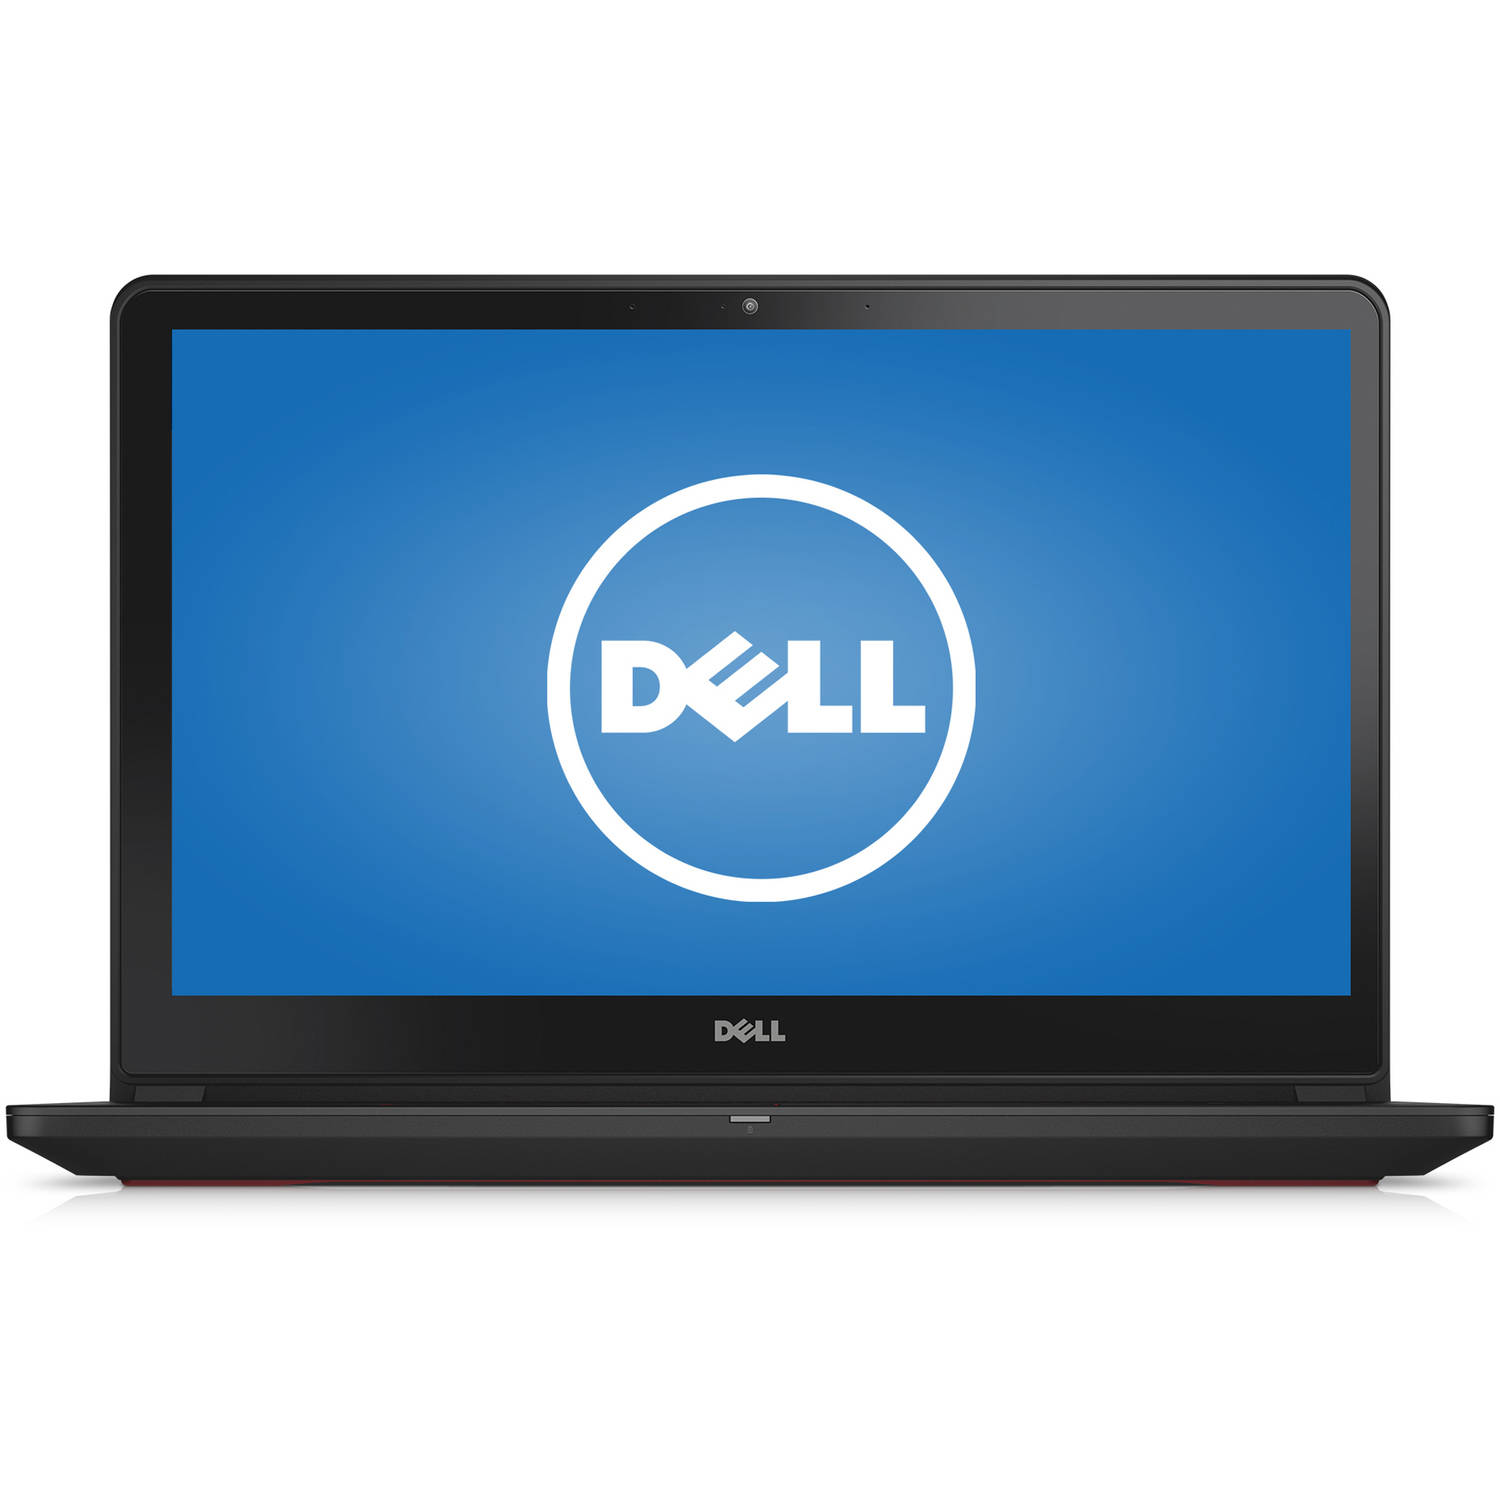 Dell Inspiron 15 Gaming Edition 15.6 Laptop Intel Core i7-6700HQ Processor,NVIDIA